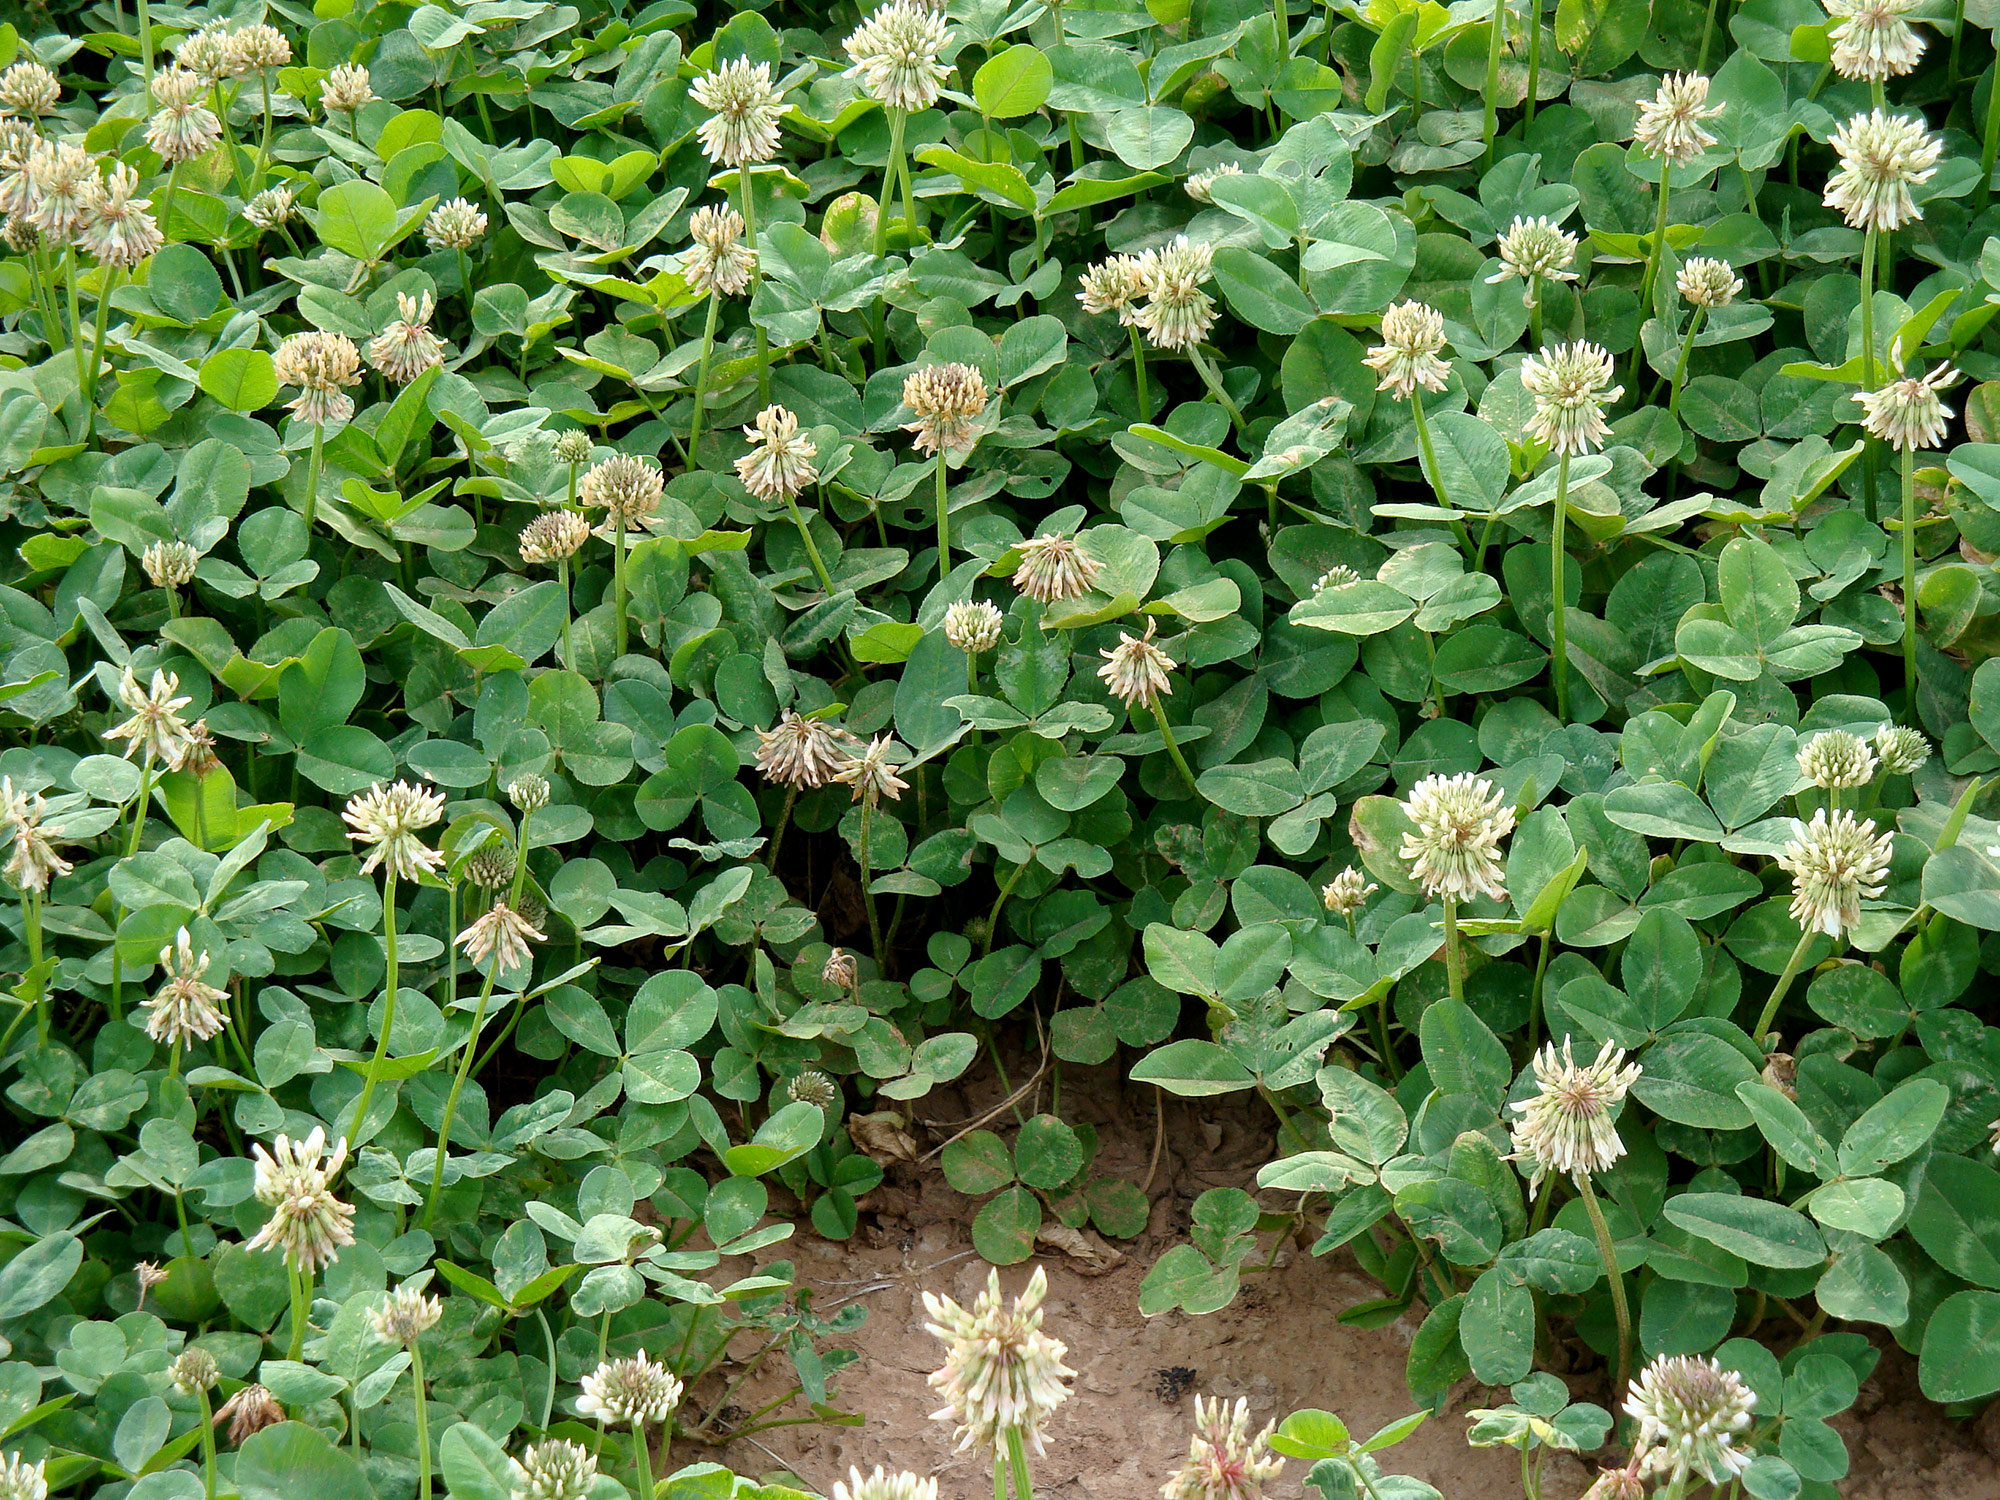 Renovation white clover variety